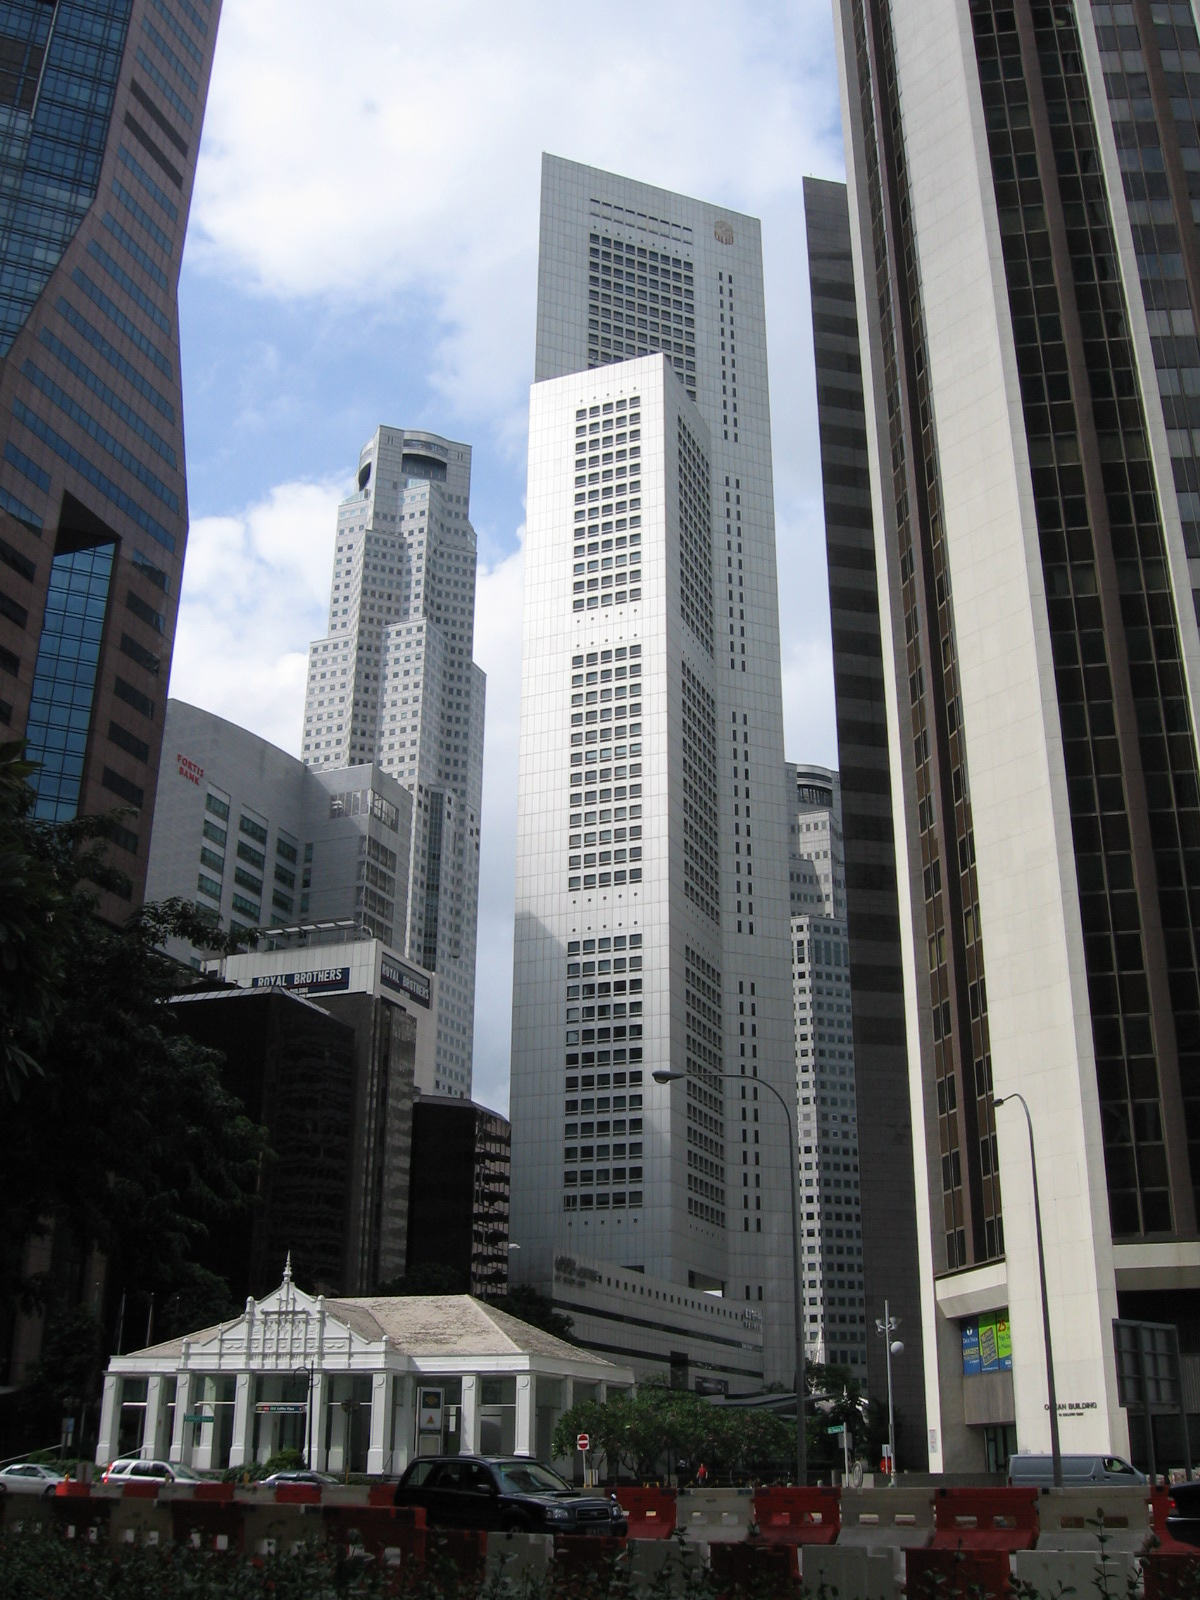 File:Raffles Place Skyscrapers, Jan 06.JPG - Wikipedia, the free ...